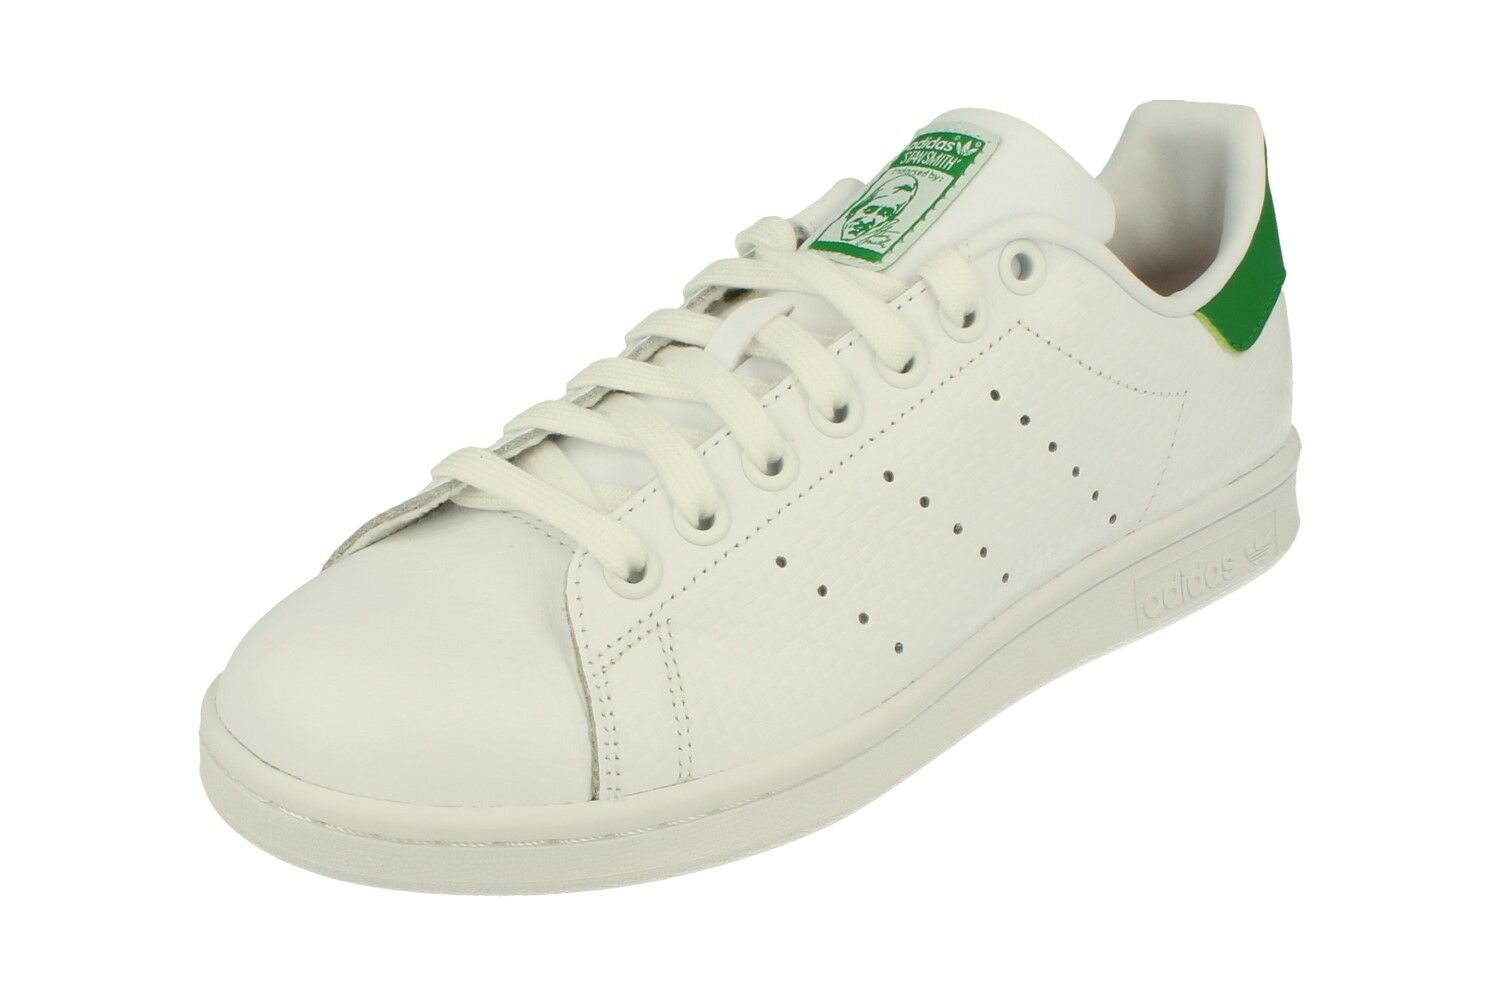 Adidas Originals Stan Smith Mens Trainers Sneakers Shoe S80029